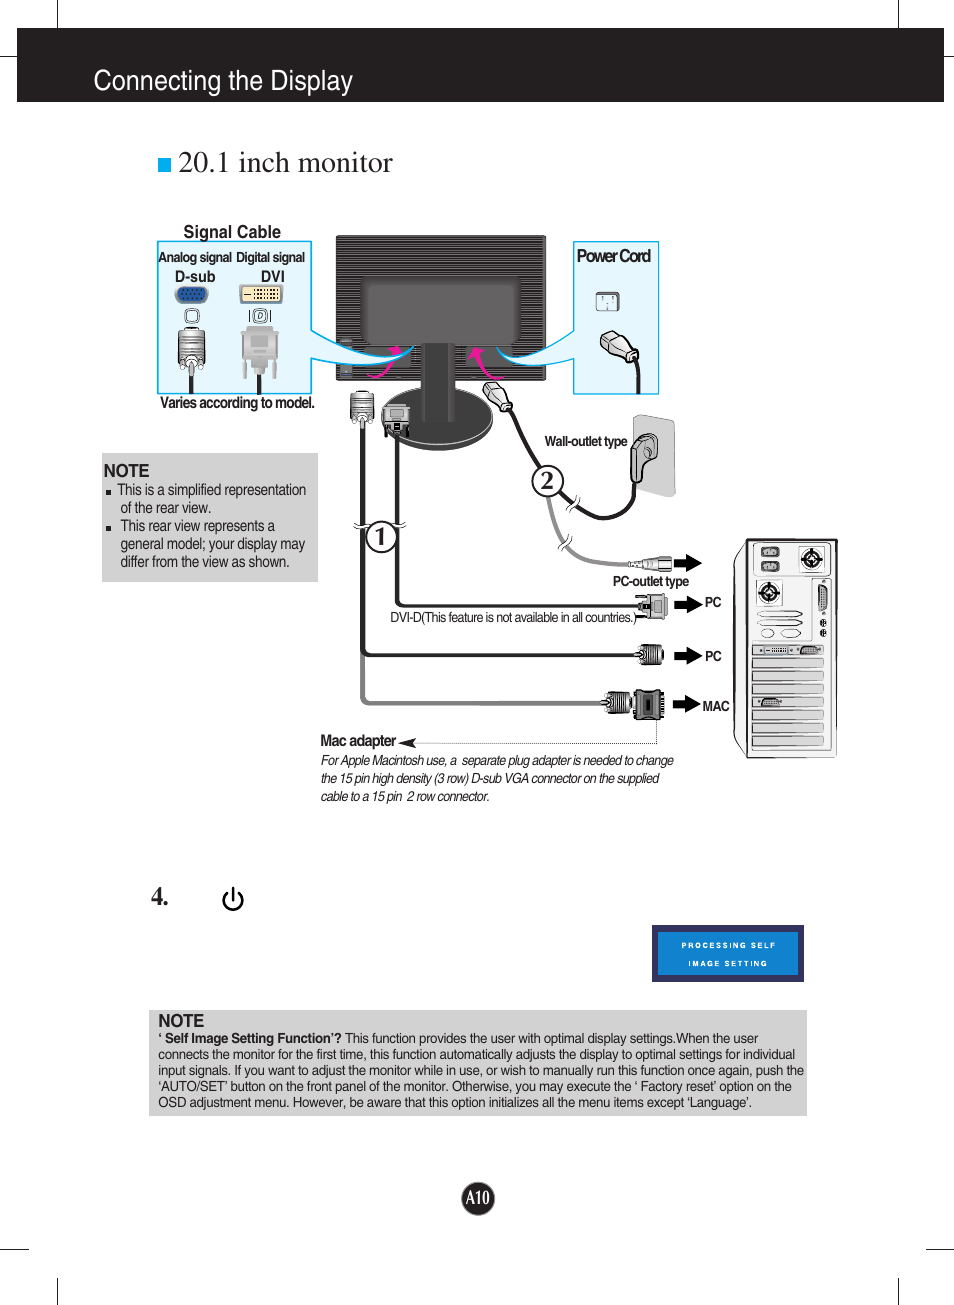 medium resolution of 1 inch monitor connecting the display lg l204wt bf user manual page 11 32